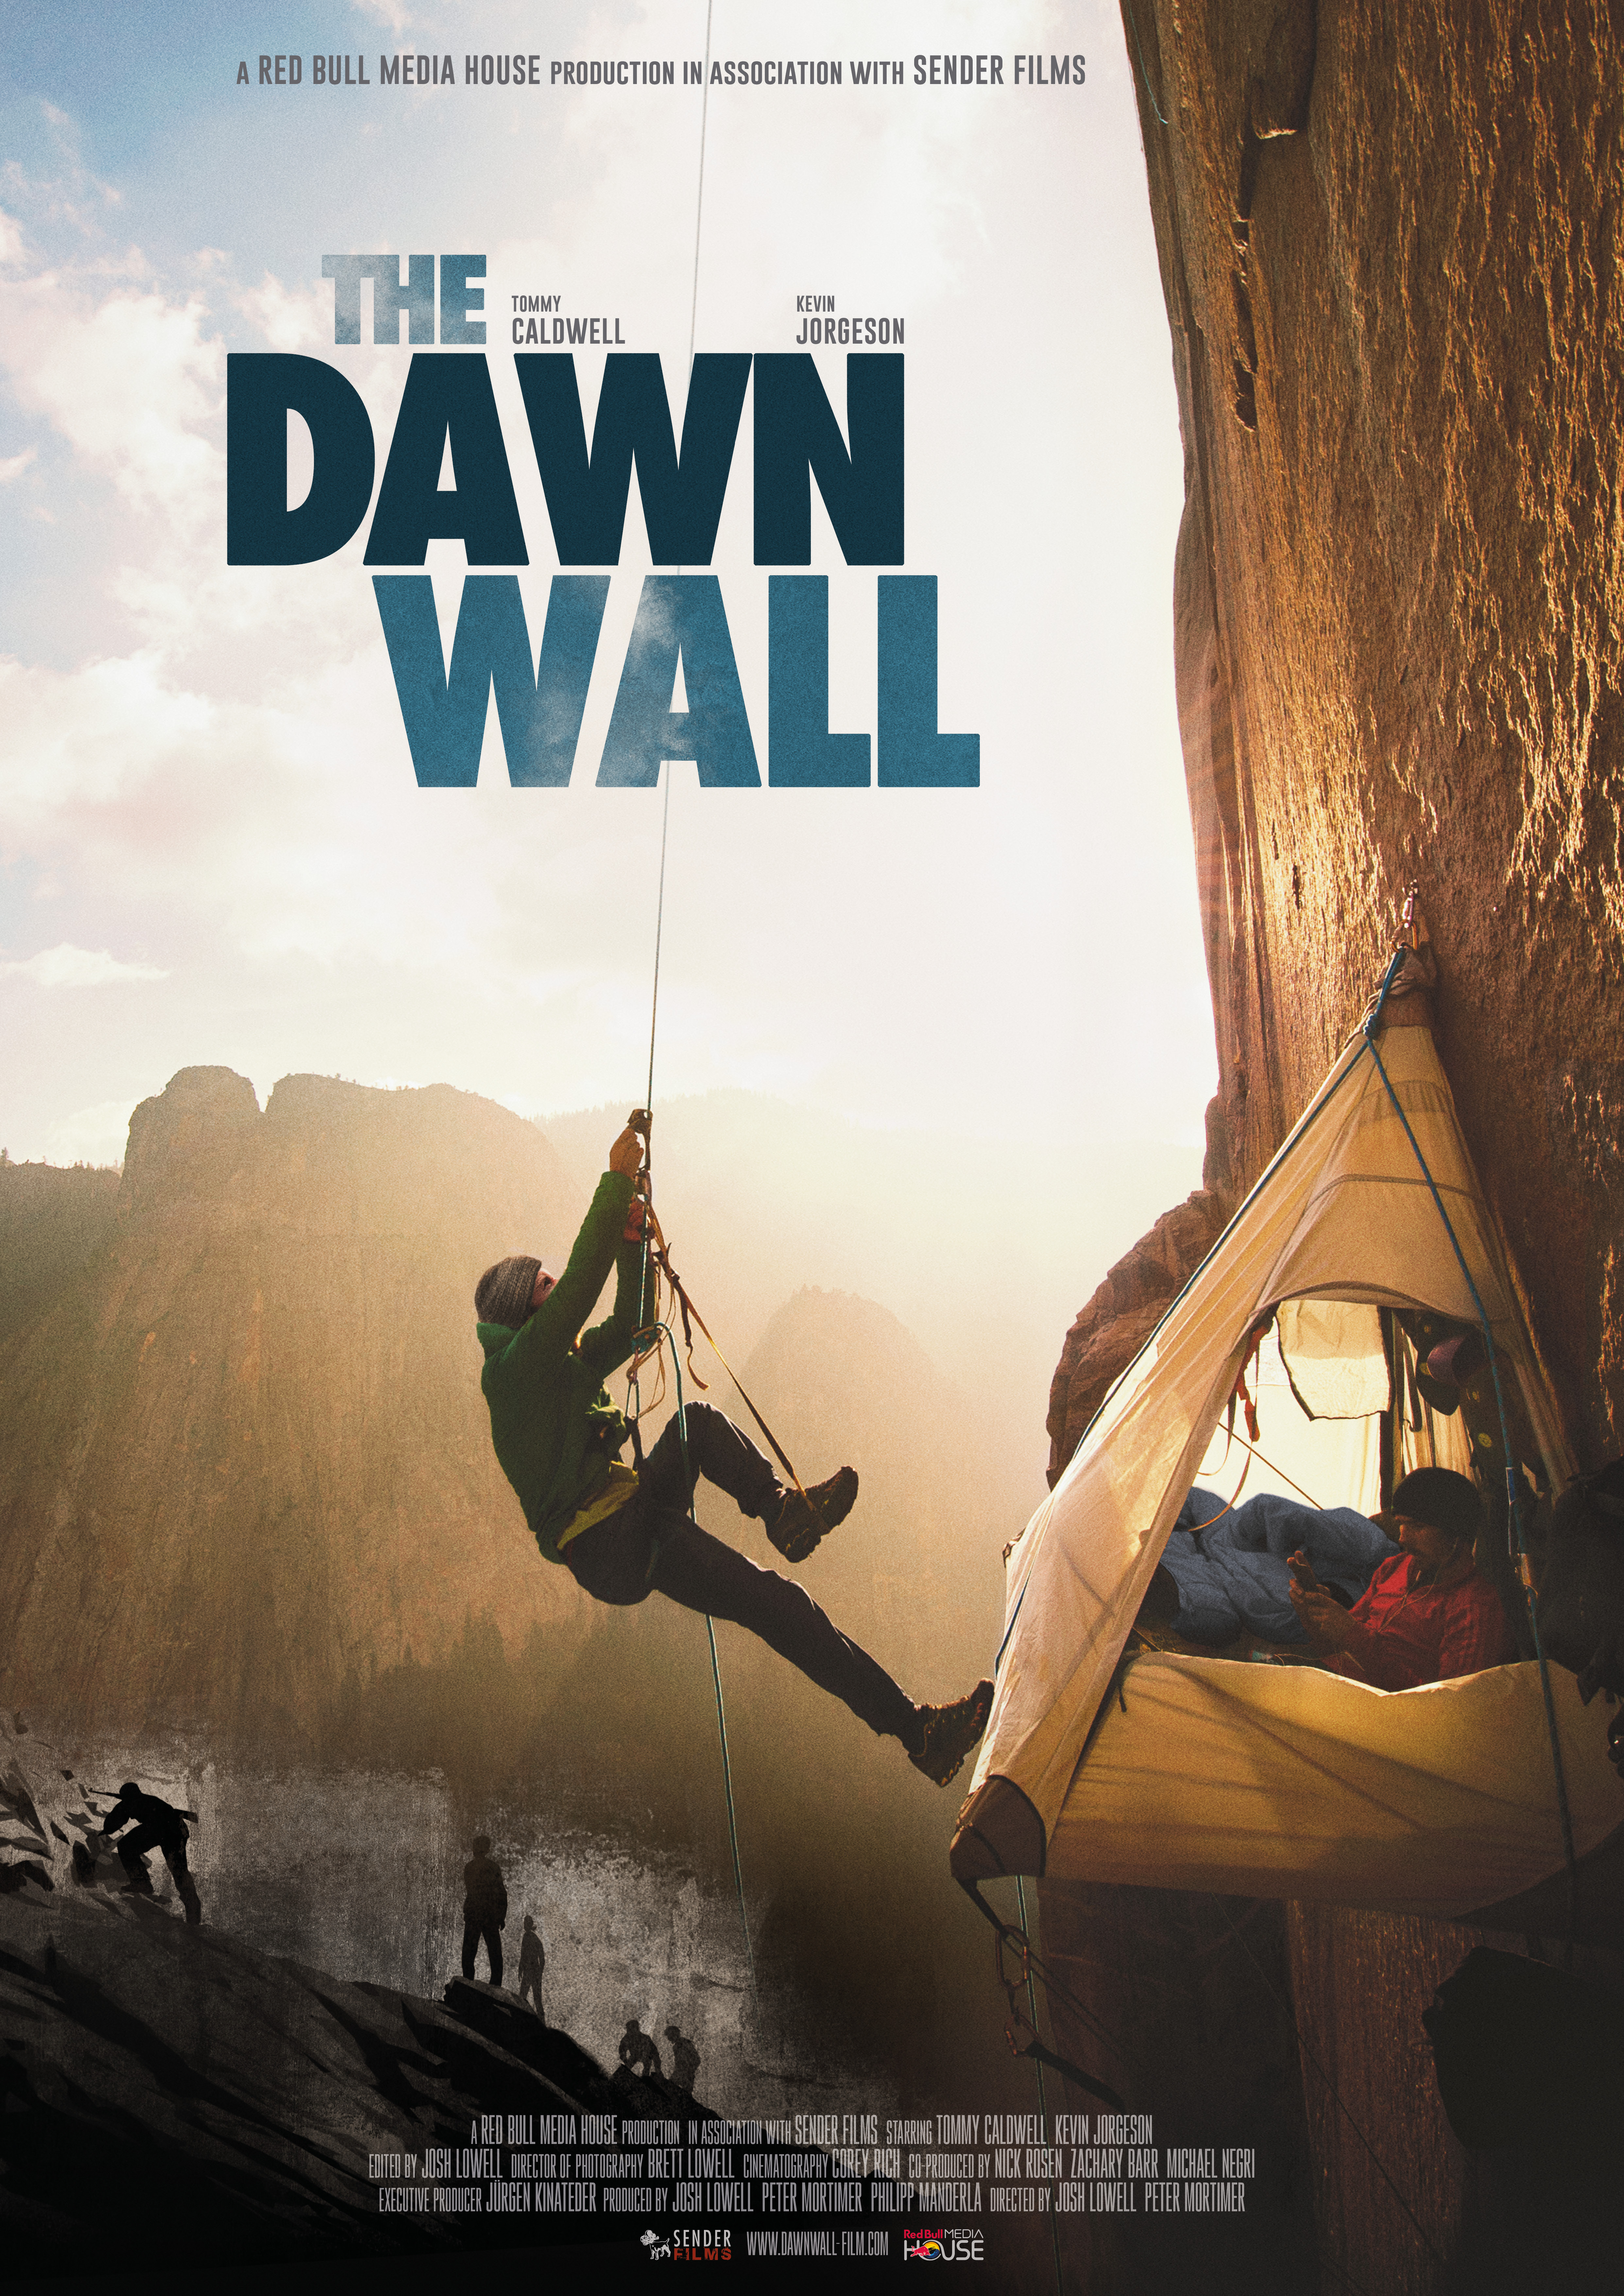 Free Download The Dawn Wall 2017 Imdb 4967x7022 For Your Desktop